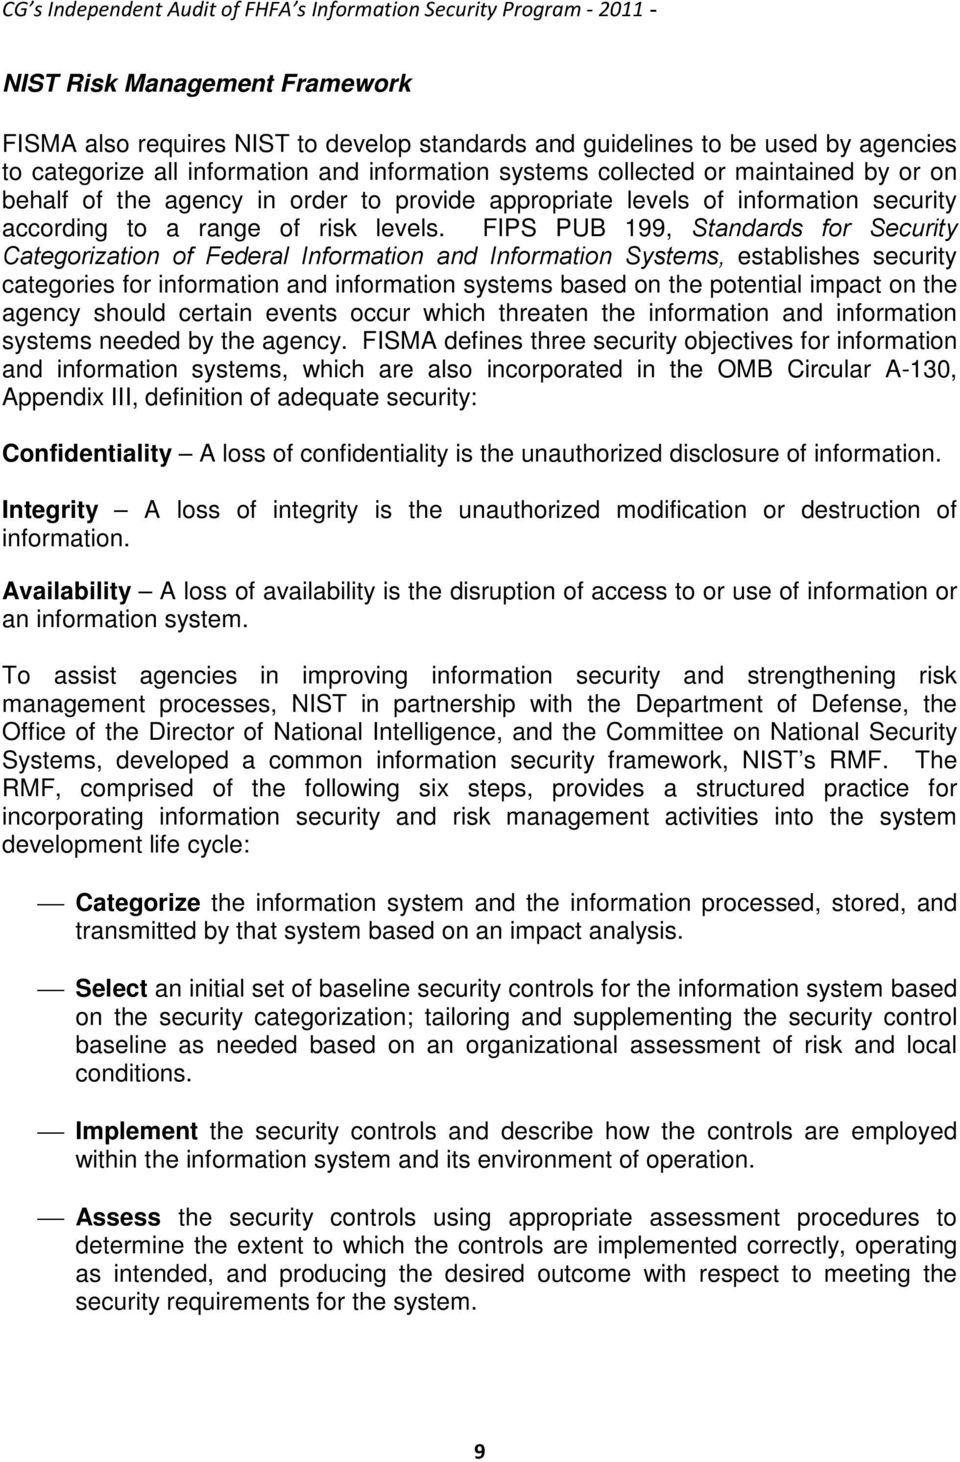 FIPS PUB 199, Standards for Security Categorization of Federal Information and Information Systems, establishes security categories for information and information systems based on the potential